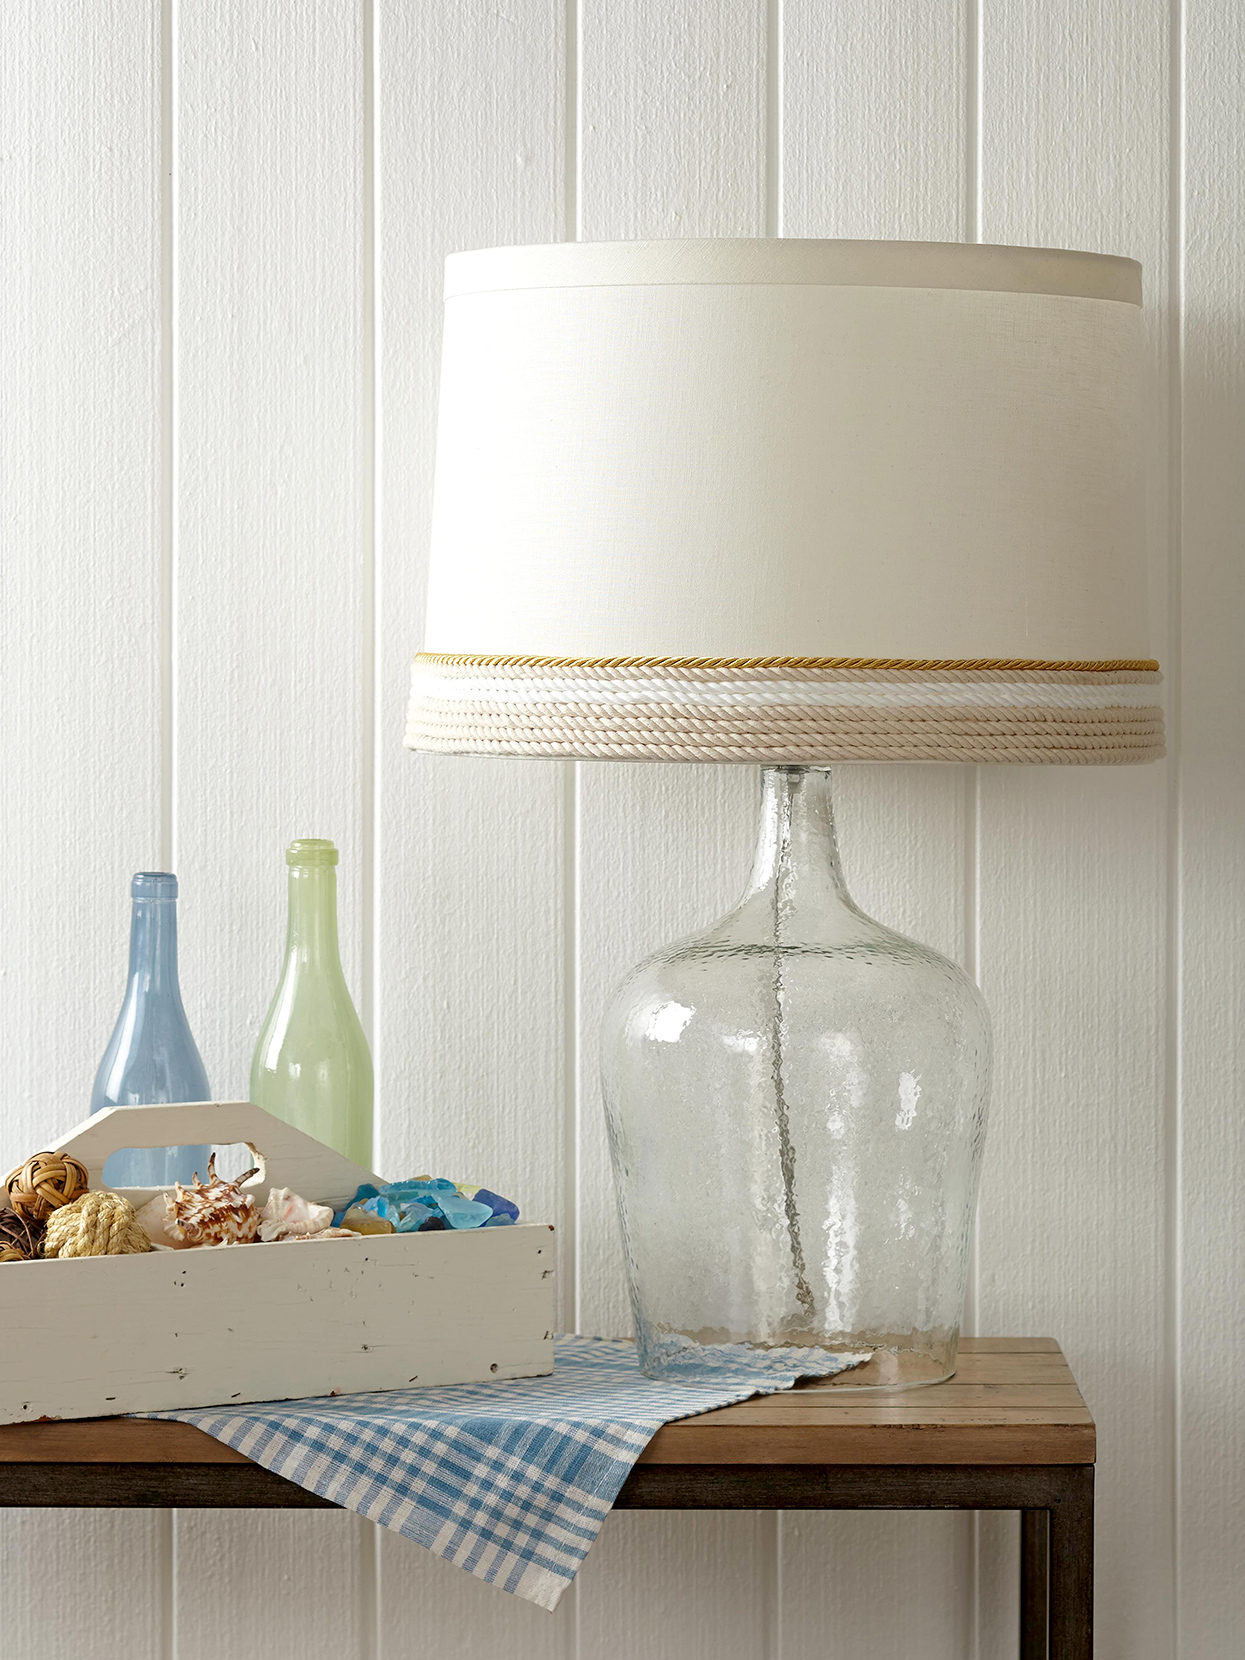 rope-wrapped lampshade on table with glass lamp base